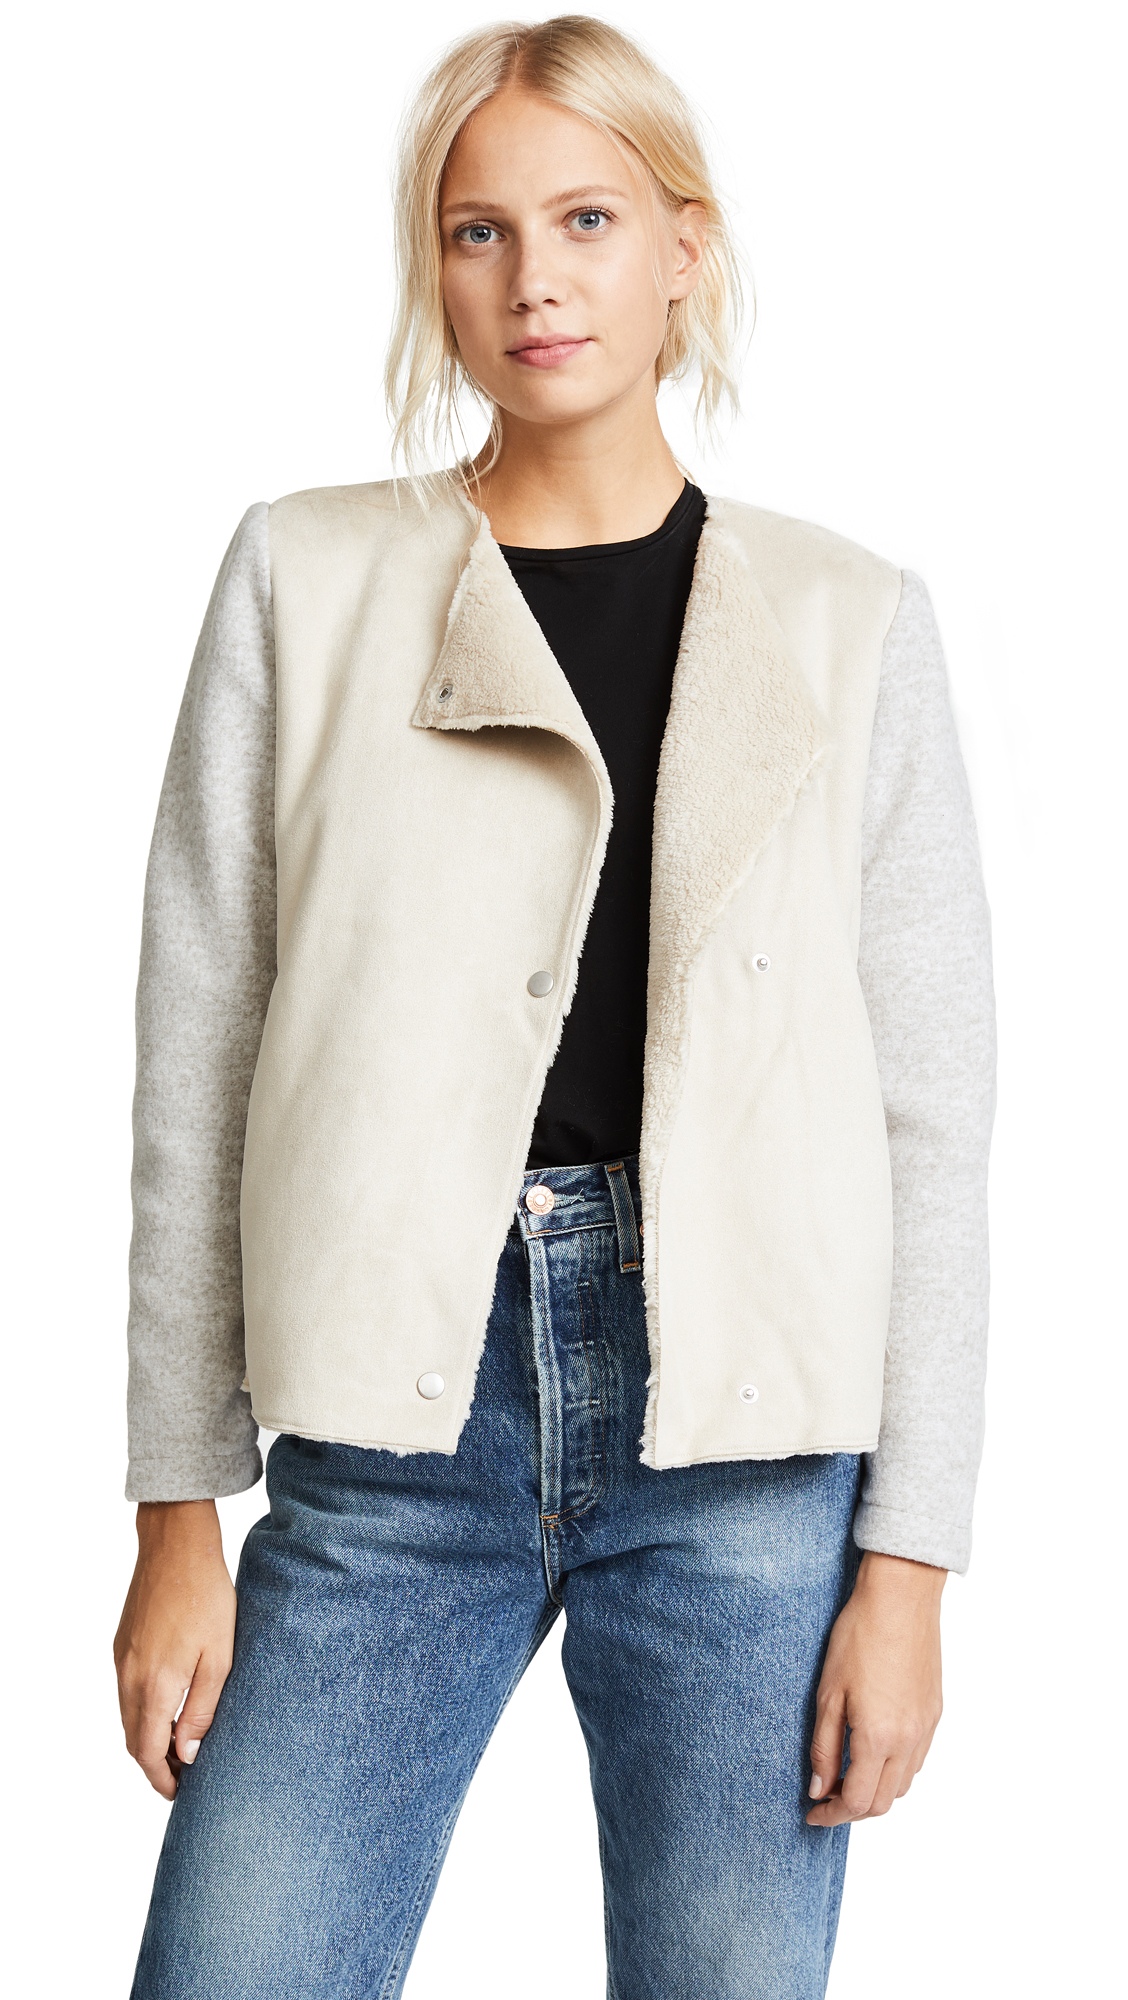 BB Dakota Glenna Bonded Faux Suede Jacket - Bone